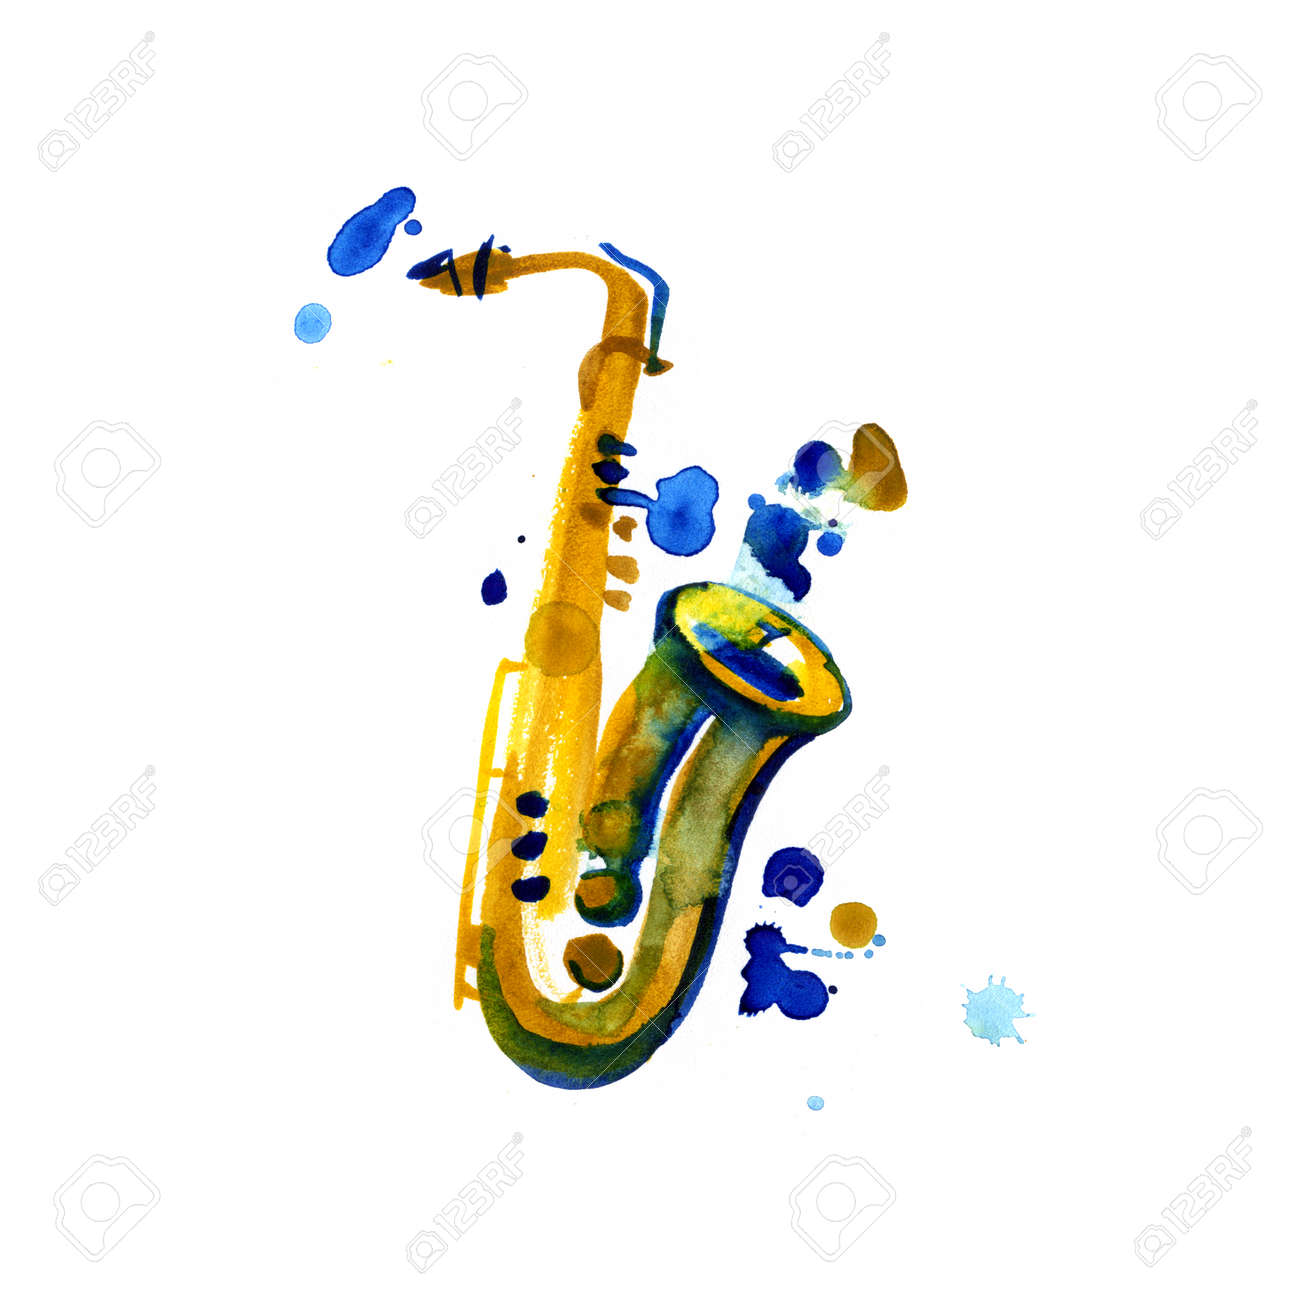 Watercolor copper brass band saxophone on white